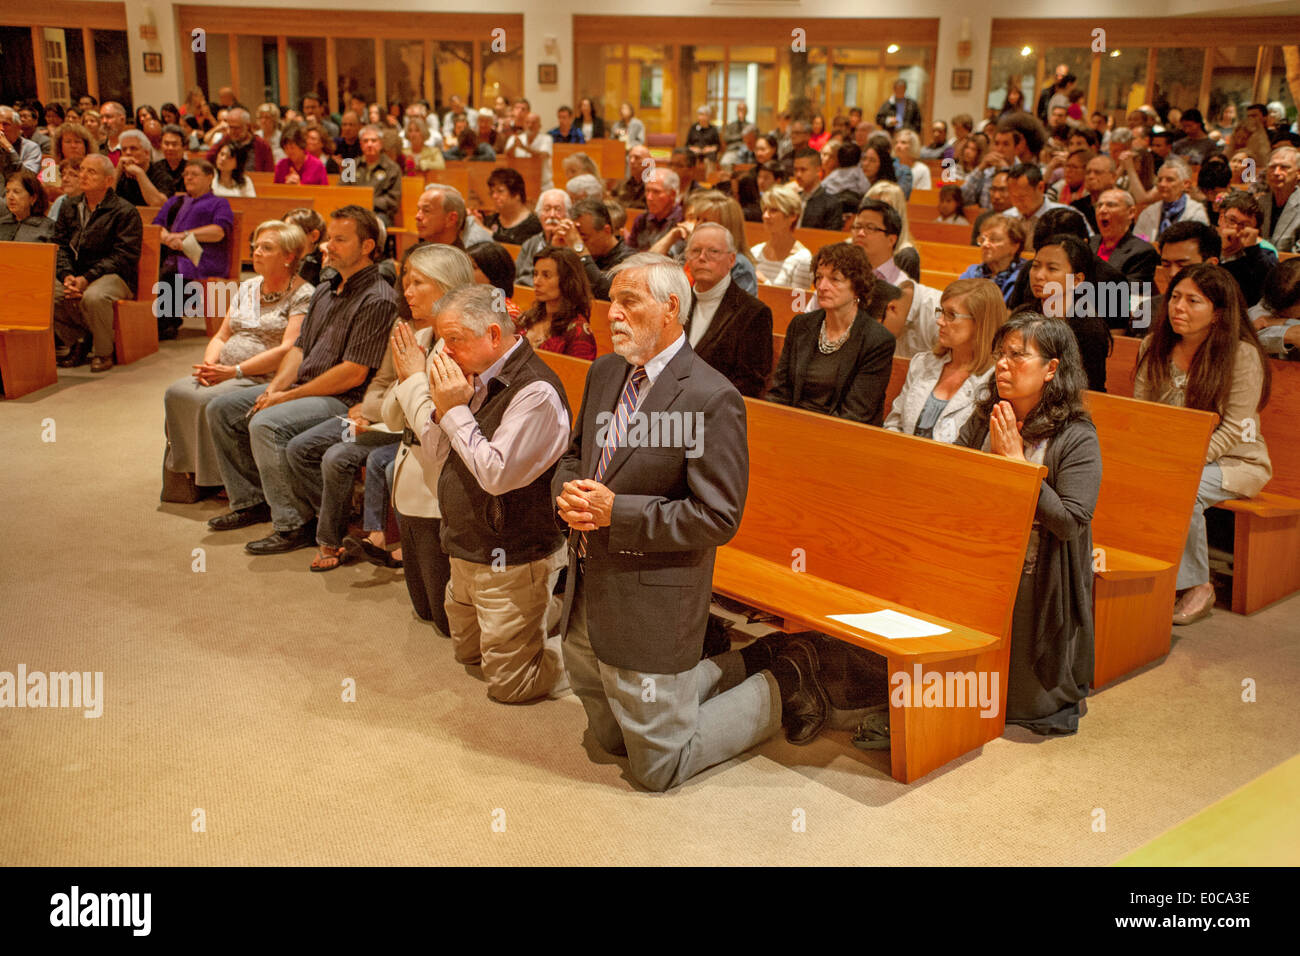 The Congregation Kneels In Prayer During Mass At St